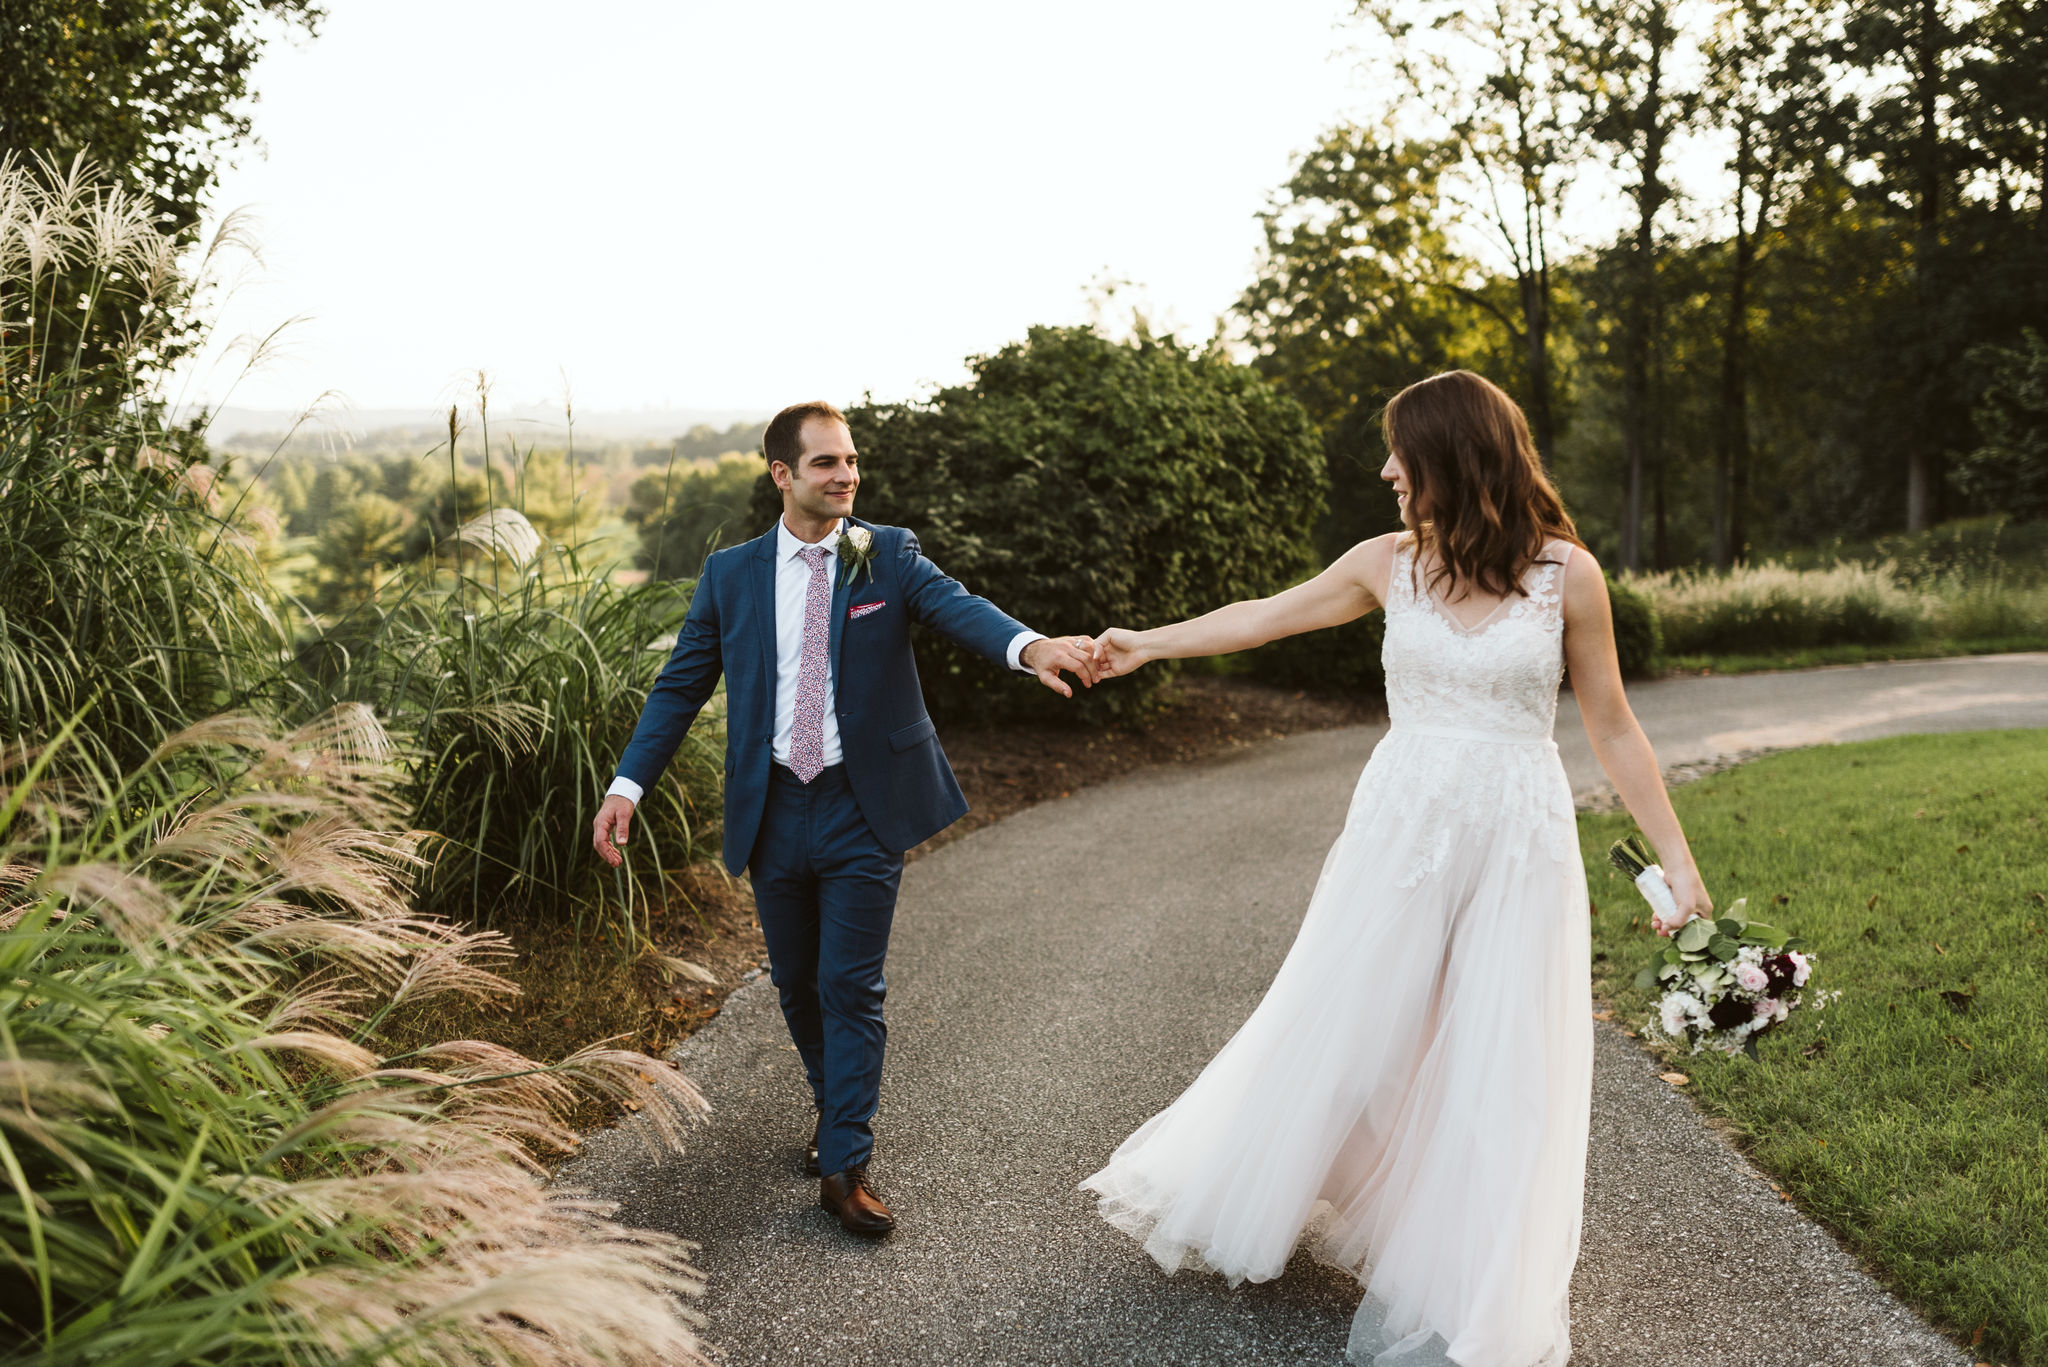 Phoenix Maryland, Baltimore Wedding Photographer, Eagle's Nest Country Club, Classic, Romantic, Couple Holding Hands on Nature Path, BHLDN Dress, Blue Suit from Generation Tux